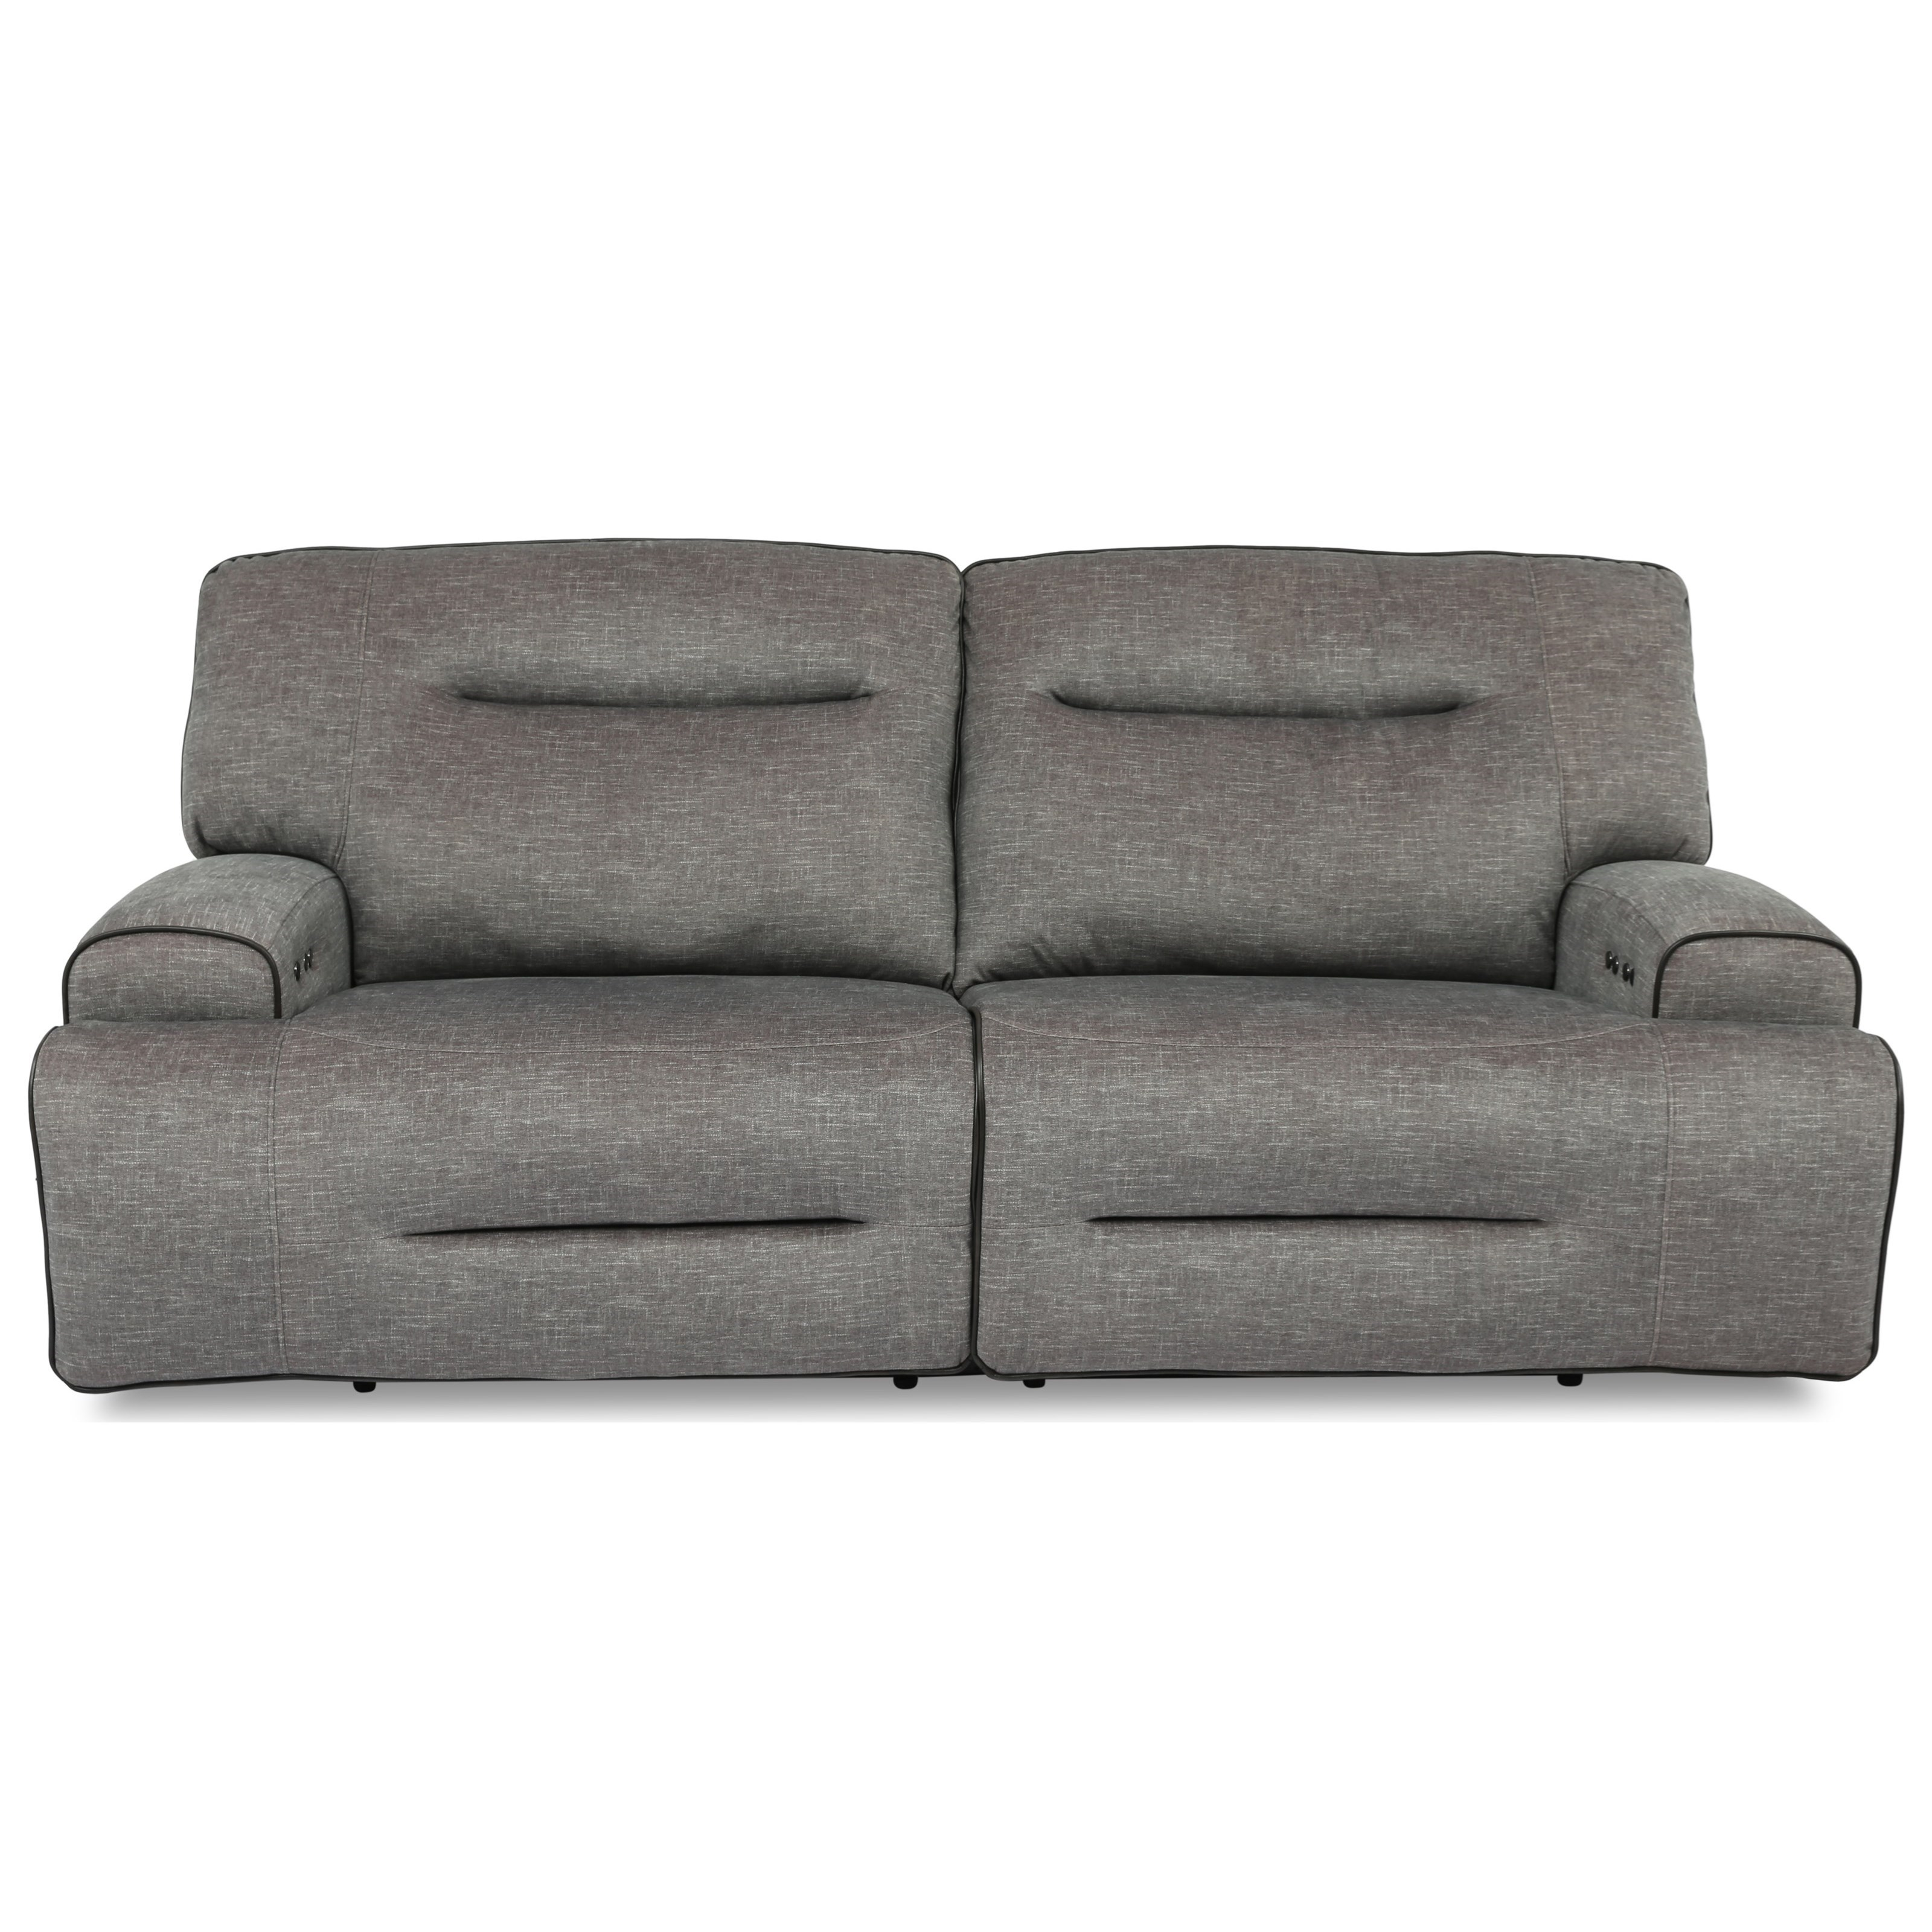 90016 Dual Power Reclining Sofa by Cheers at Household Furniture